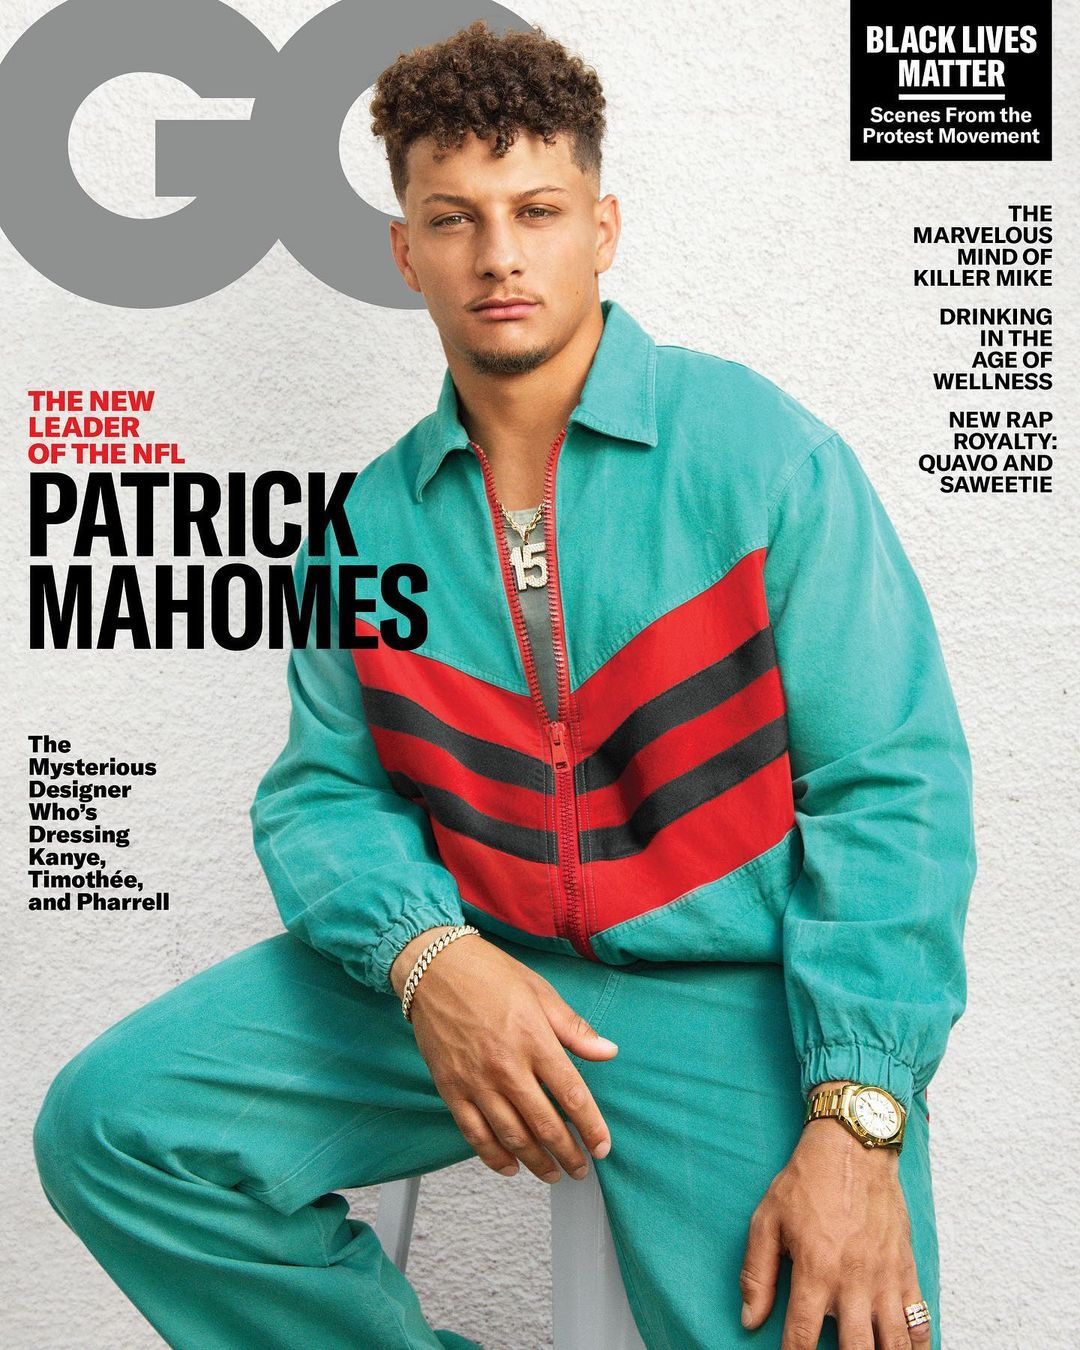 Patrick Mahomes Phone Number, Fanmail Address and Contact Details